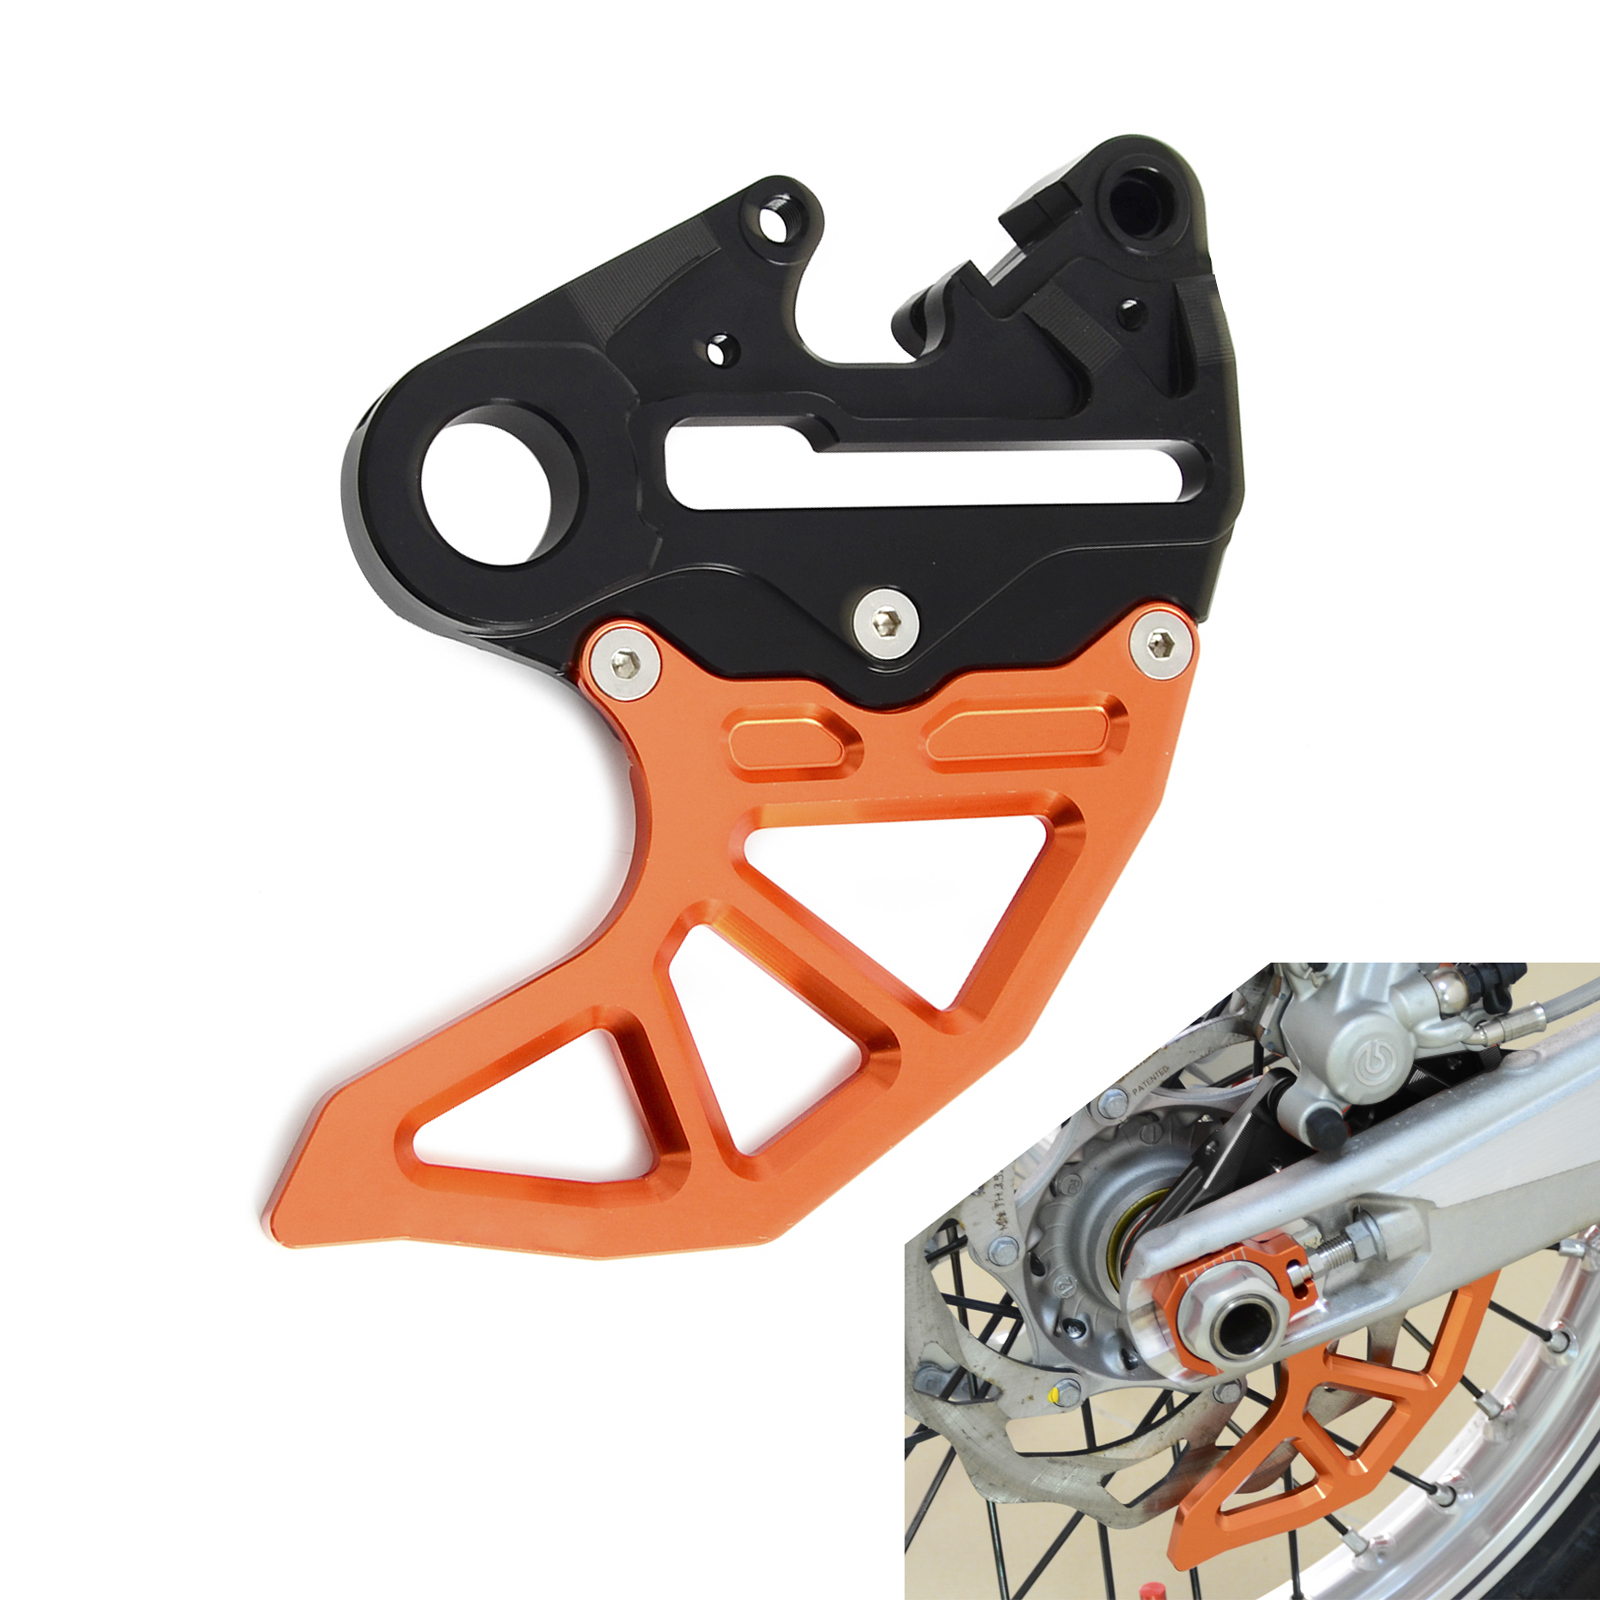 CNC Rear Brake Disc Guard Protector For KTM 125 250 350 450 530 SX SXF SMR XC XCF XCW EXC EXCF 6 Days 2004 2017 2018 2019-in Covers & Ornamental Mouldings from Automobiles & Motorcycles    2